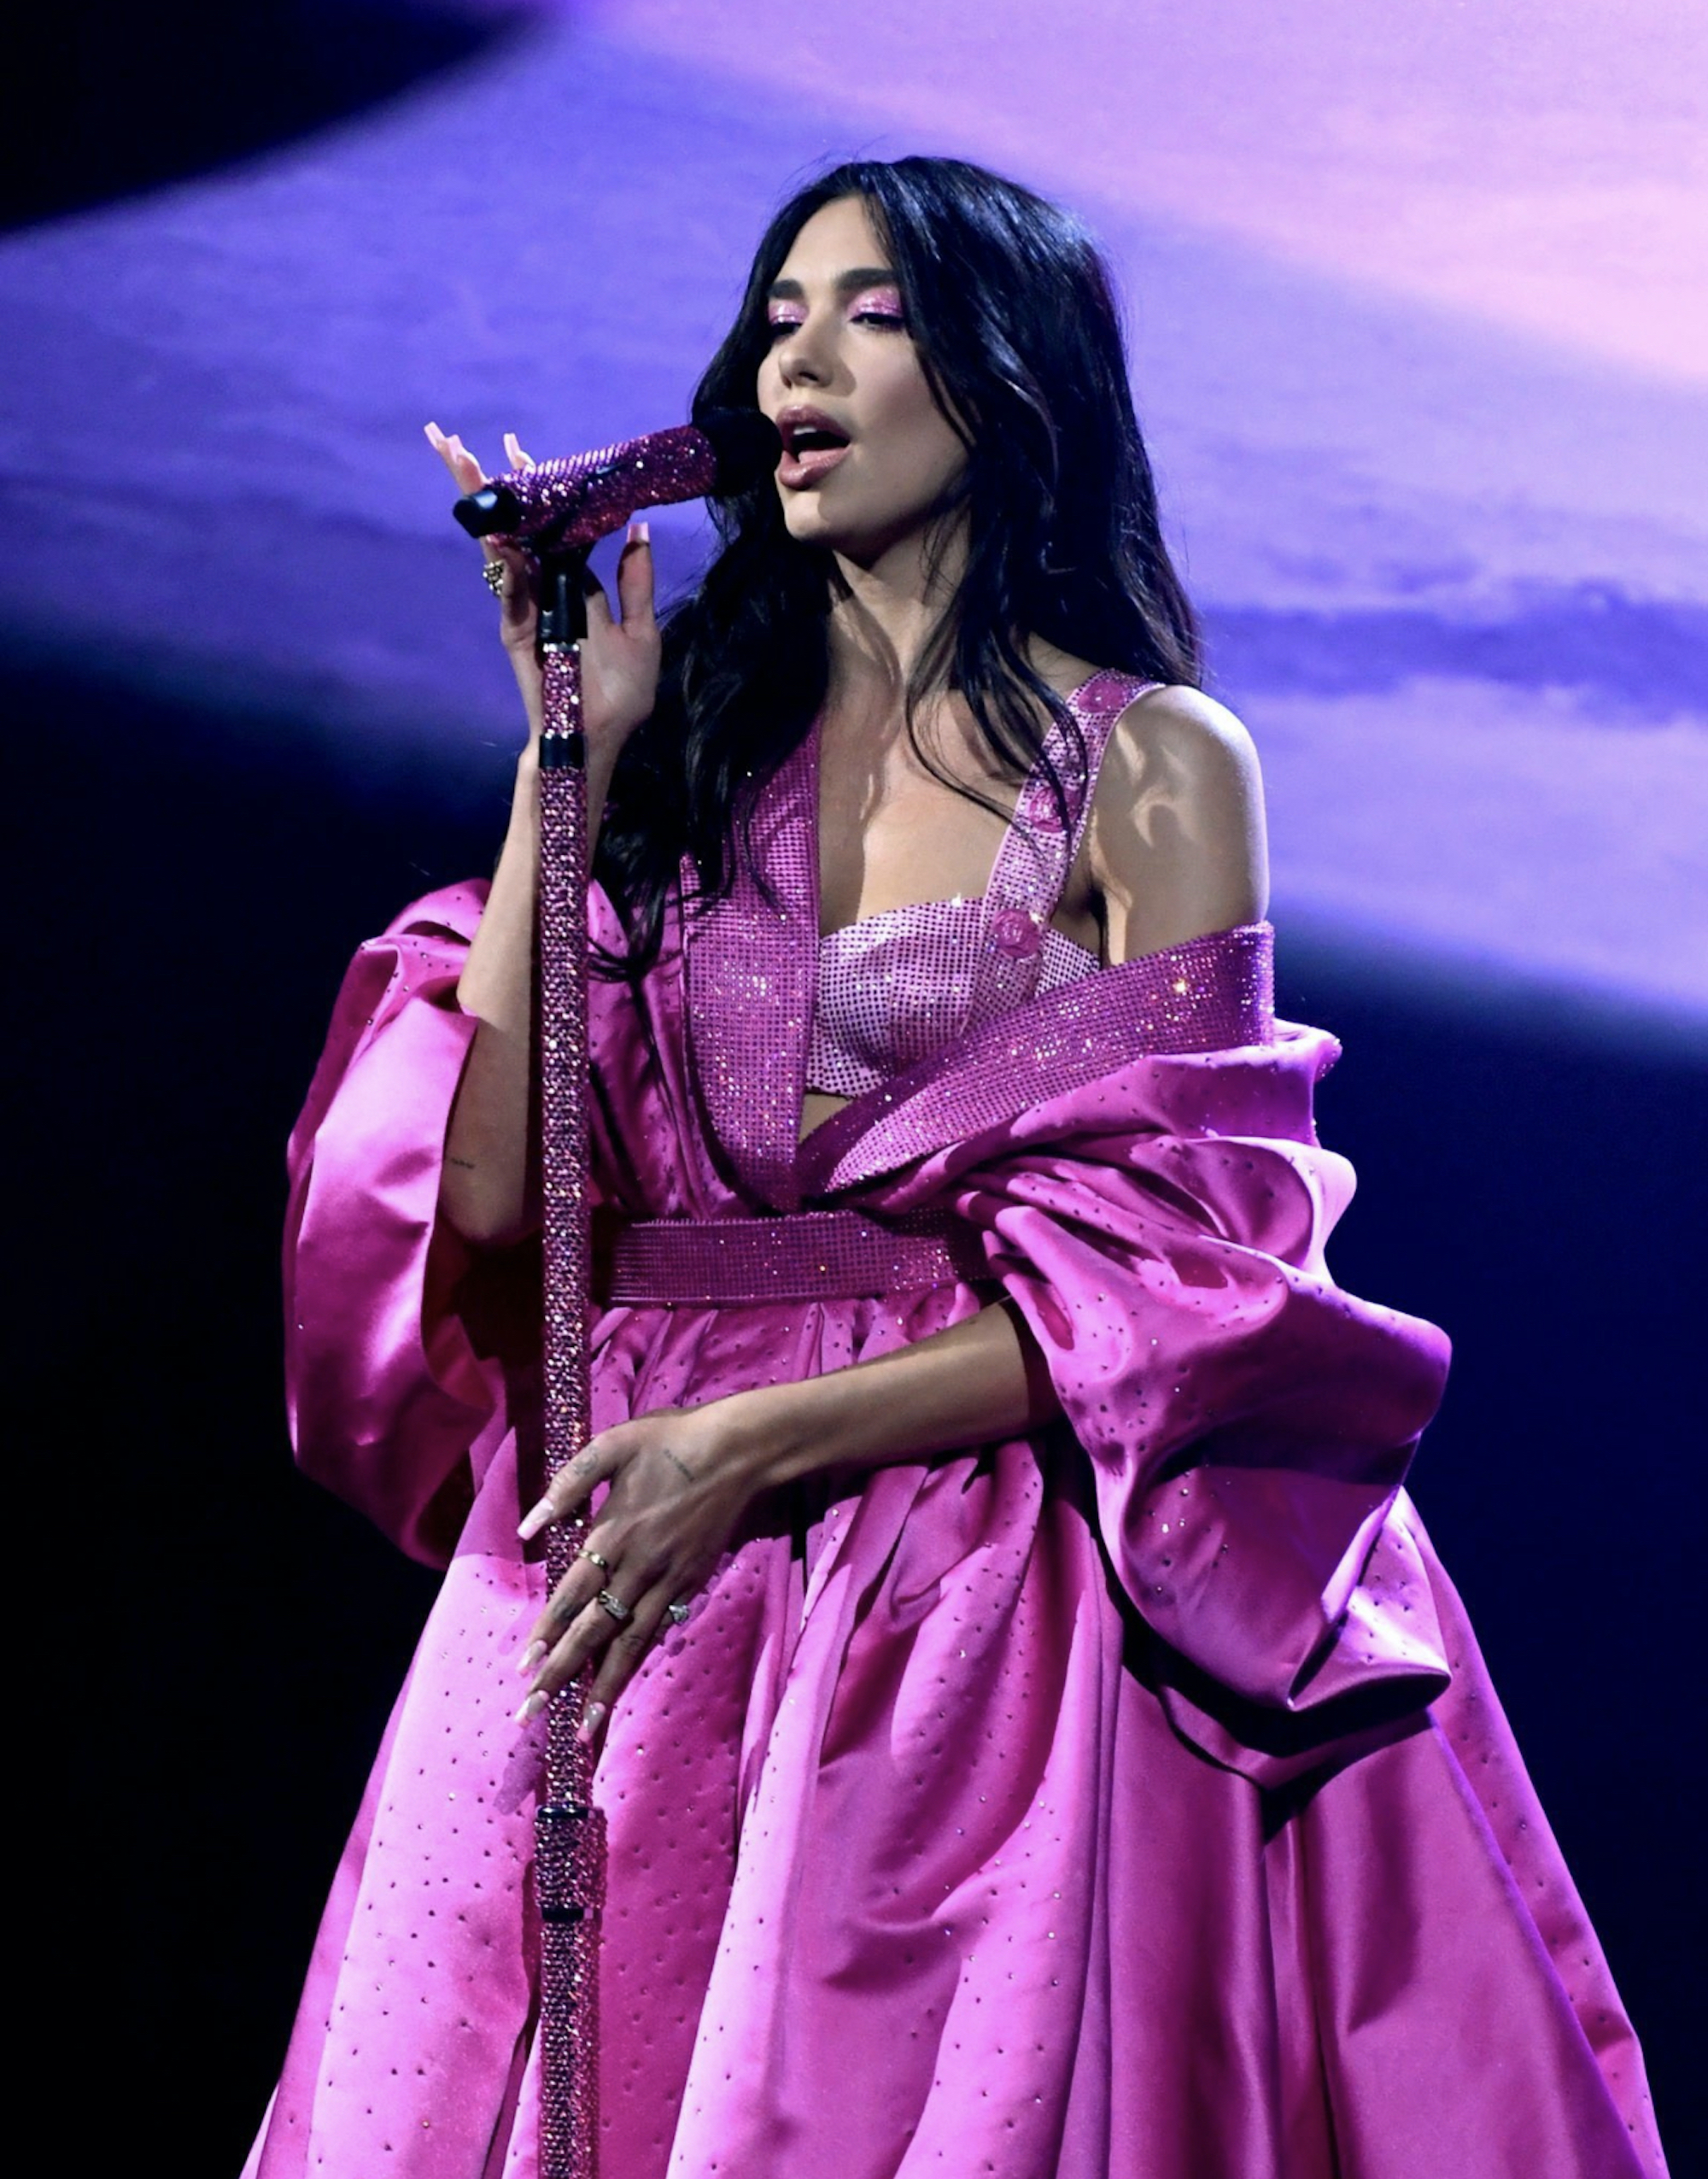 Dua Lipa performing at the Grammys 2021